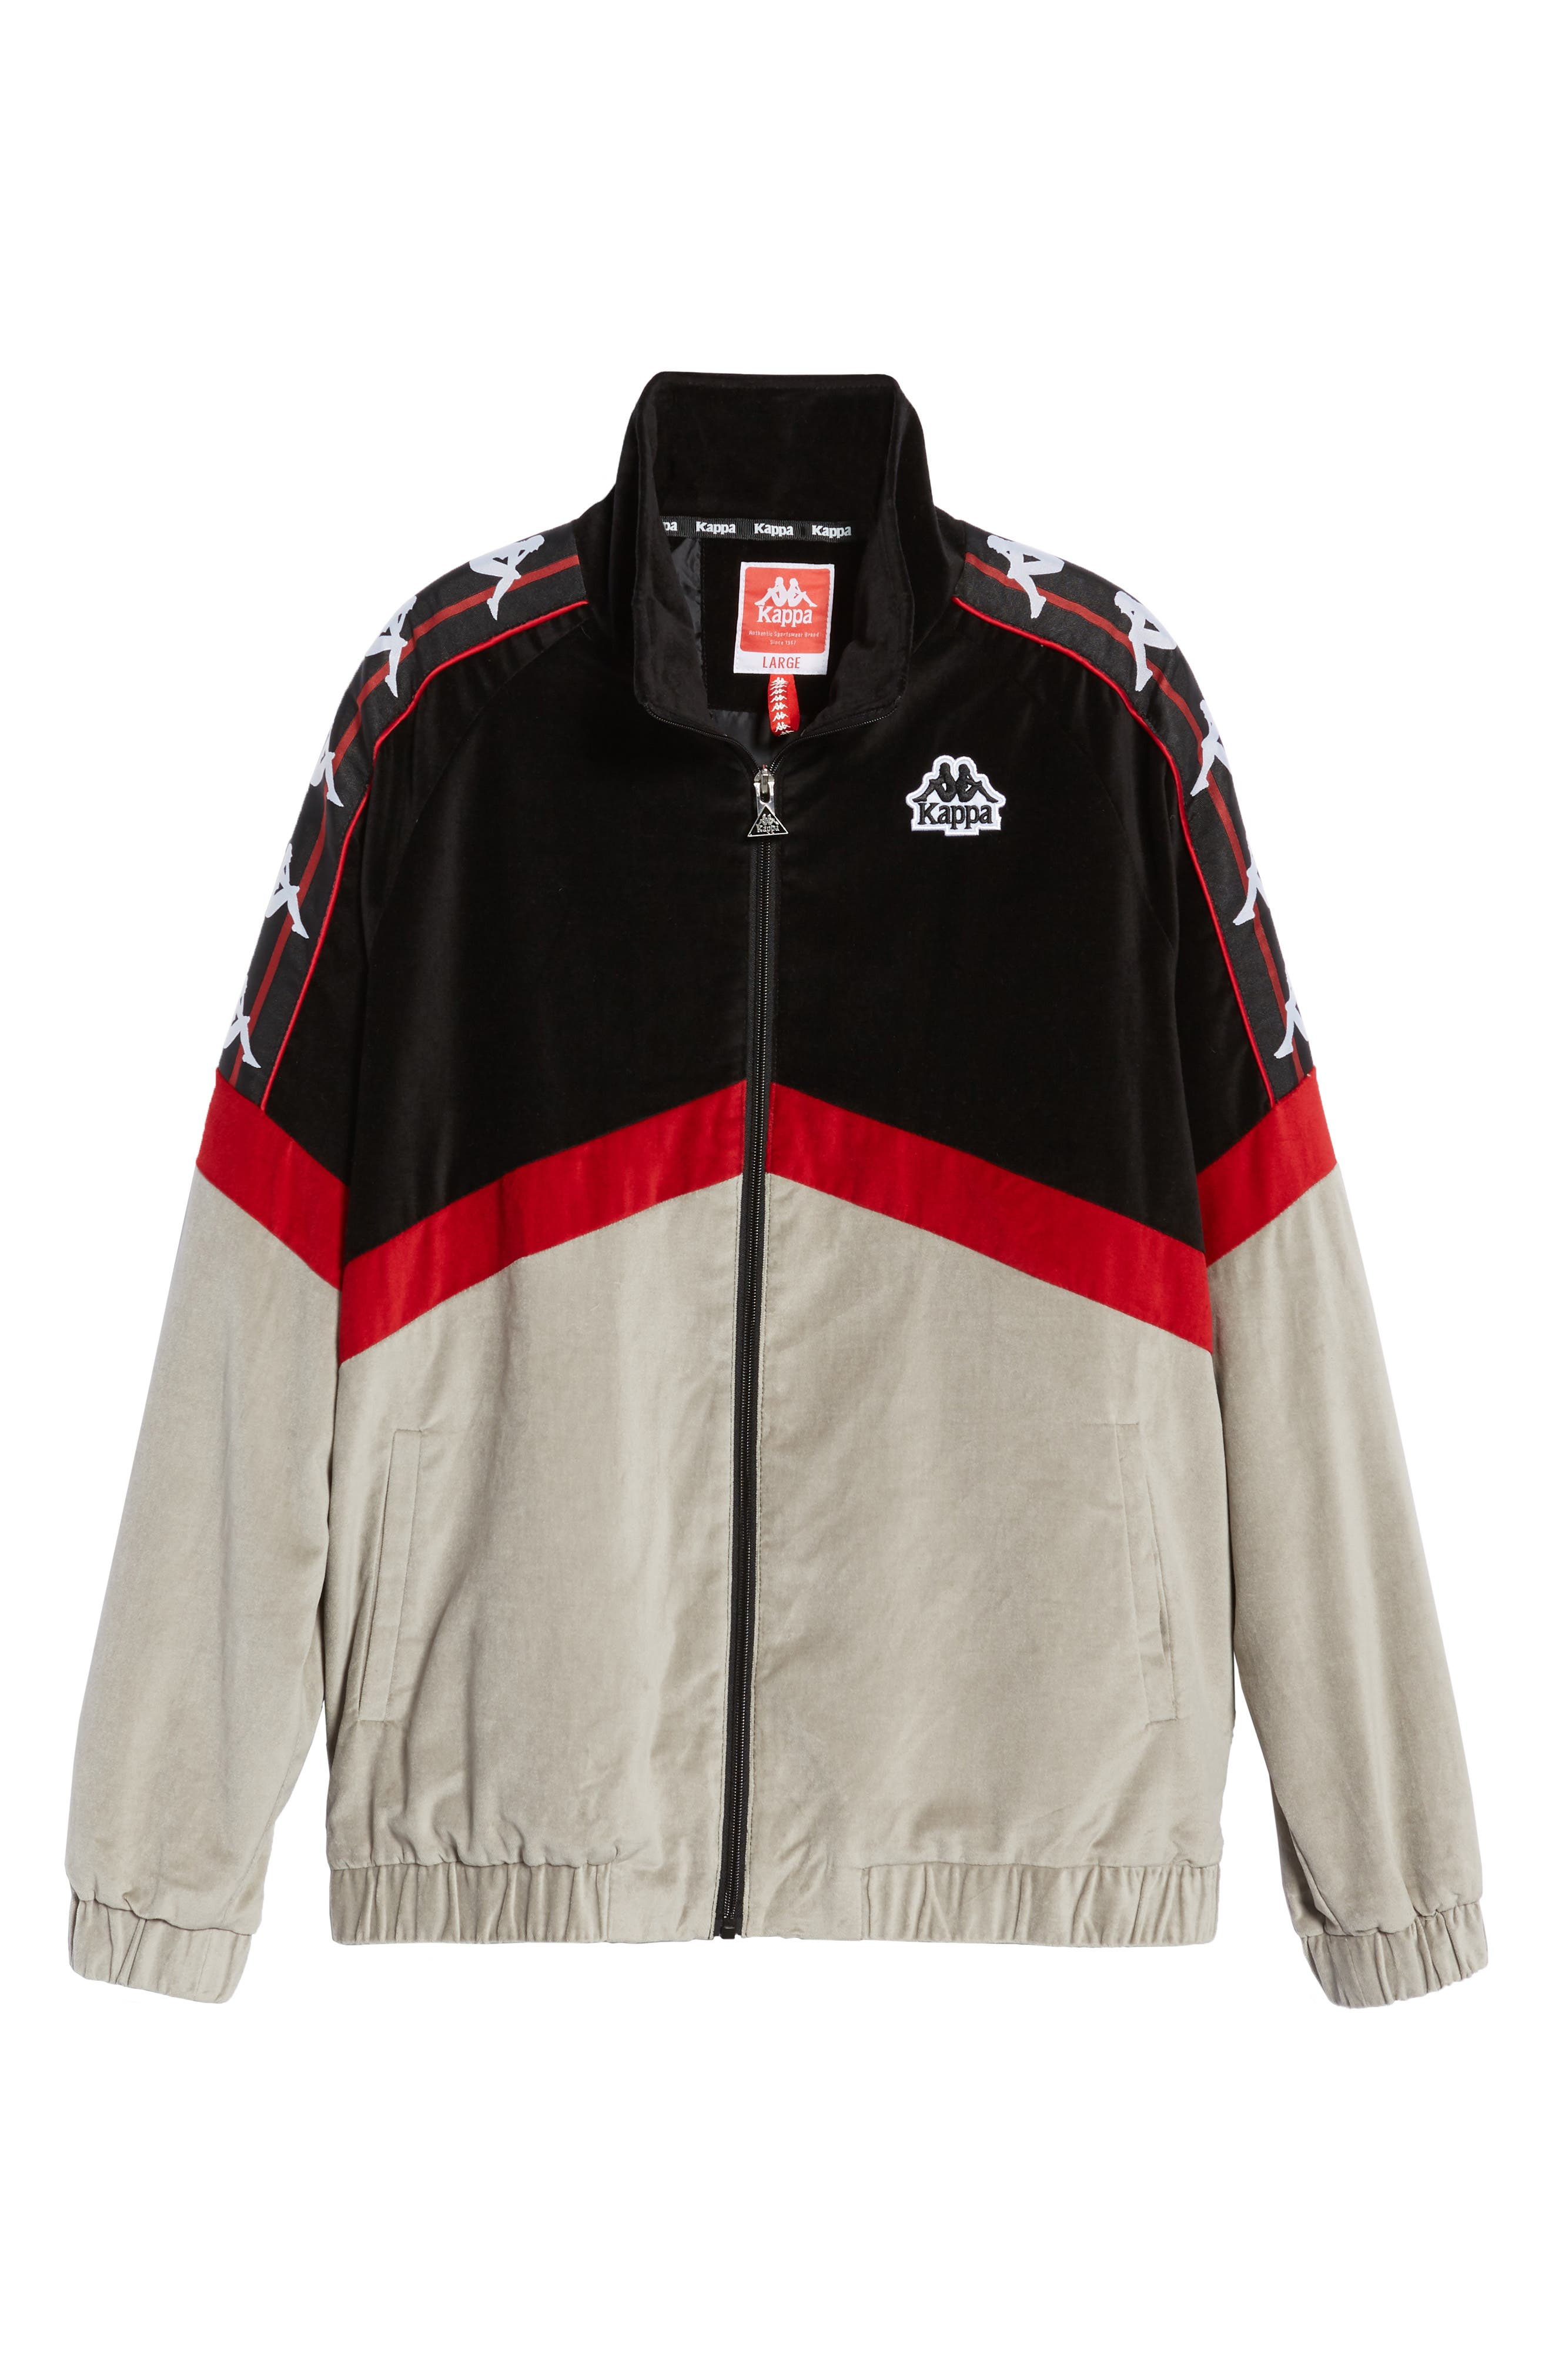 Authentic Cabrini Track Jacket,                             Alternate thumbnail 6, color,                             BLACK/ RED/ GREY